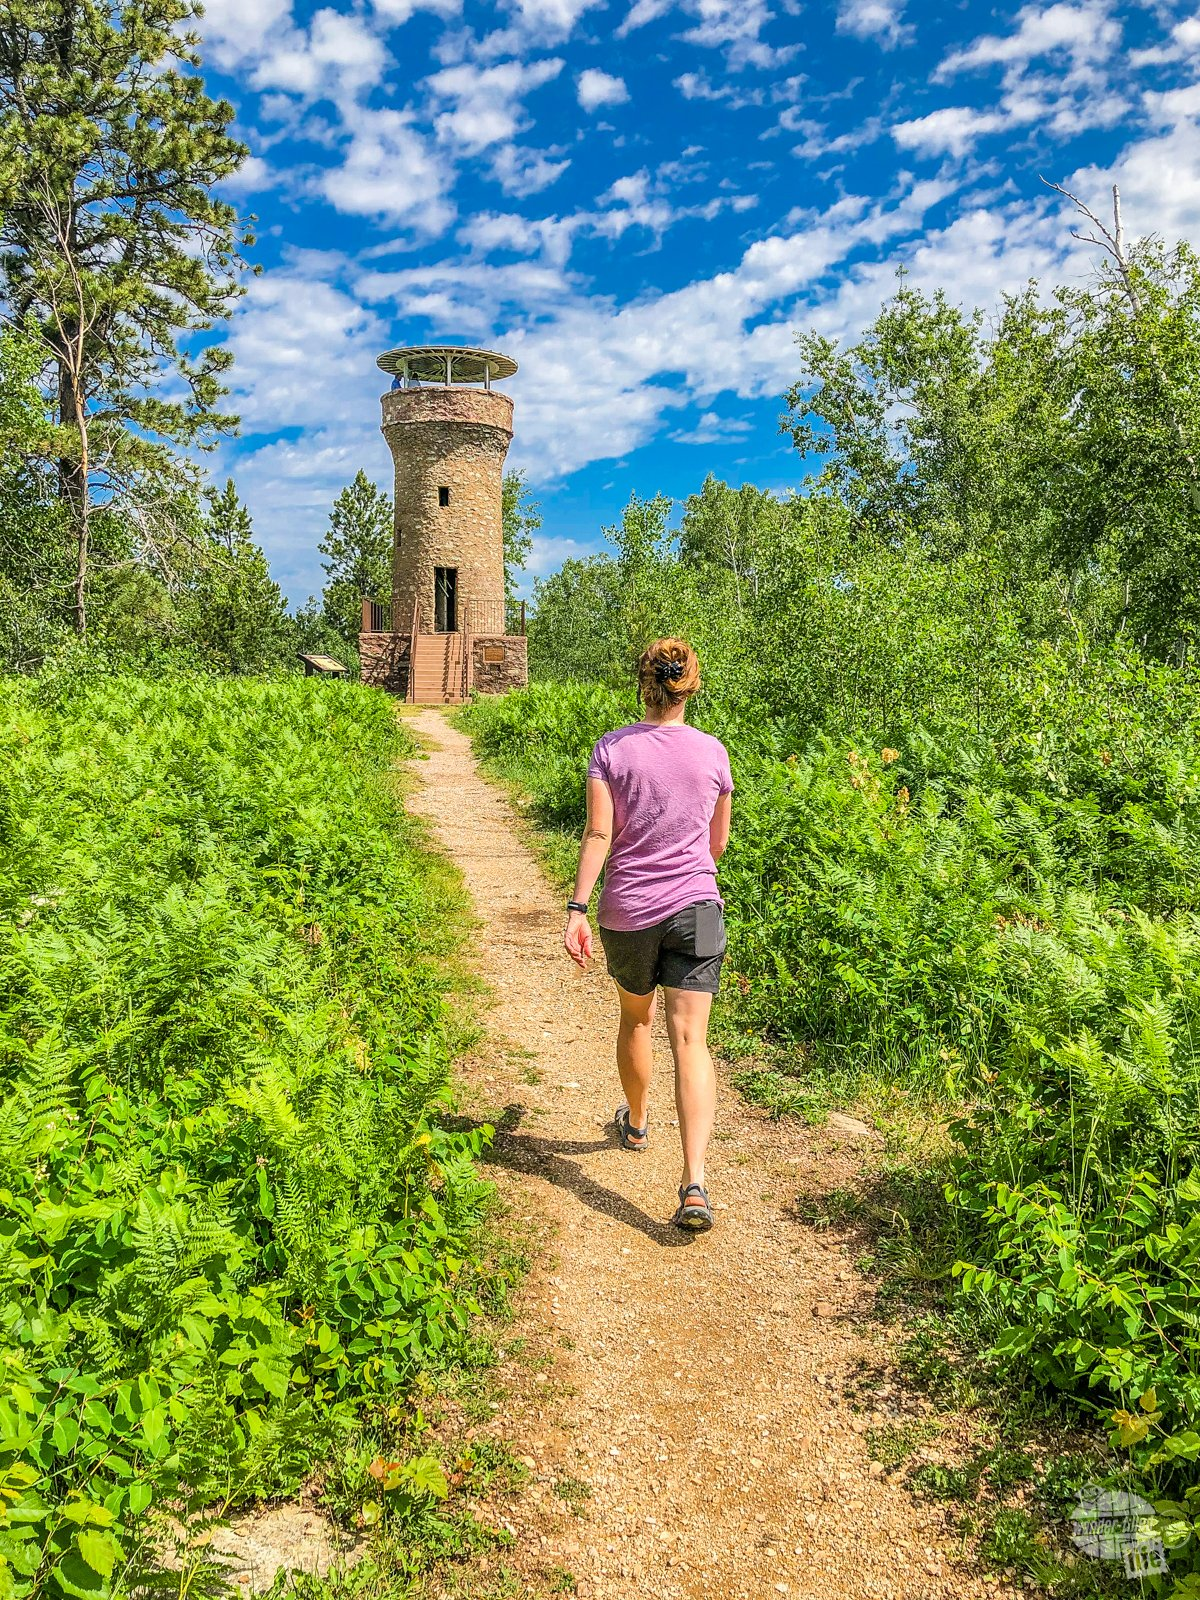 Bonnie walking up to the Mount Roosevelt Friendship Tower, a monument dedicated to Theodore Roosevelt by his long-time friend Seth Bullock.